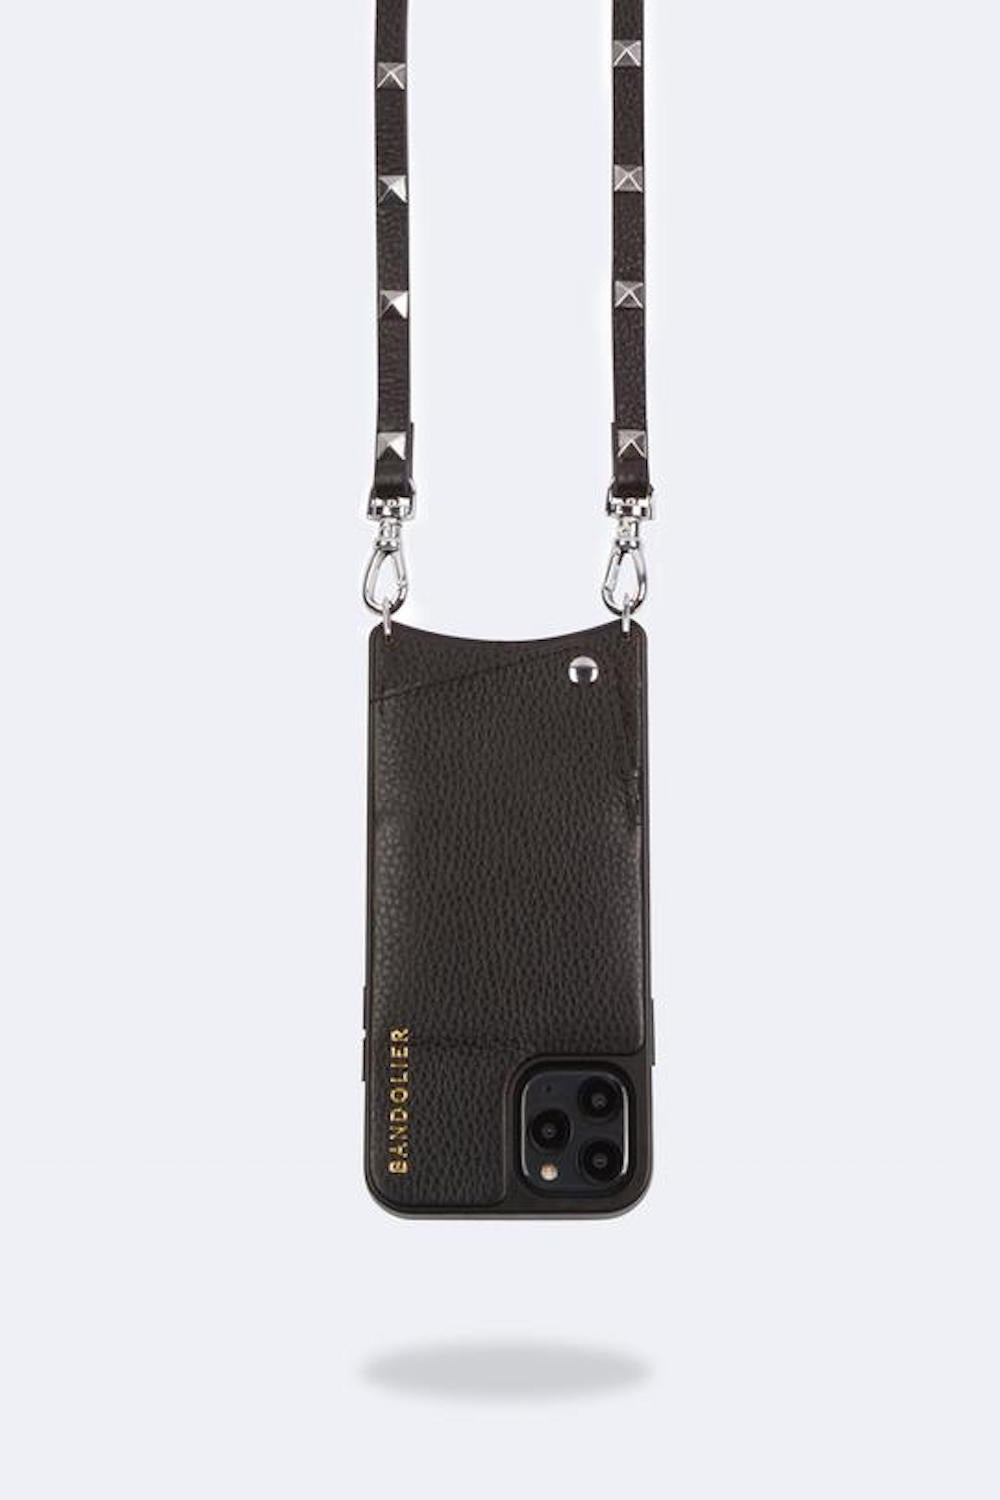 Sarah Pebble leather crossbody bandolier Black/Silver - Bags - Bandolier - SELFIE STORE BARCELONA S.C.P.